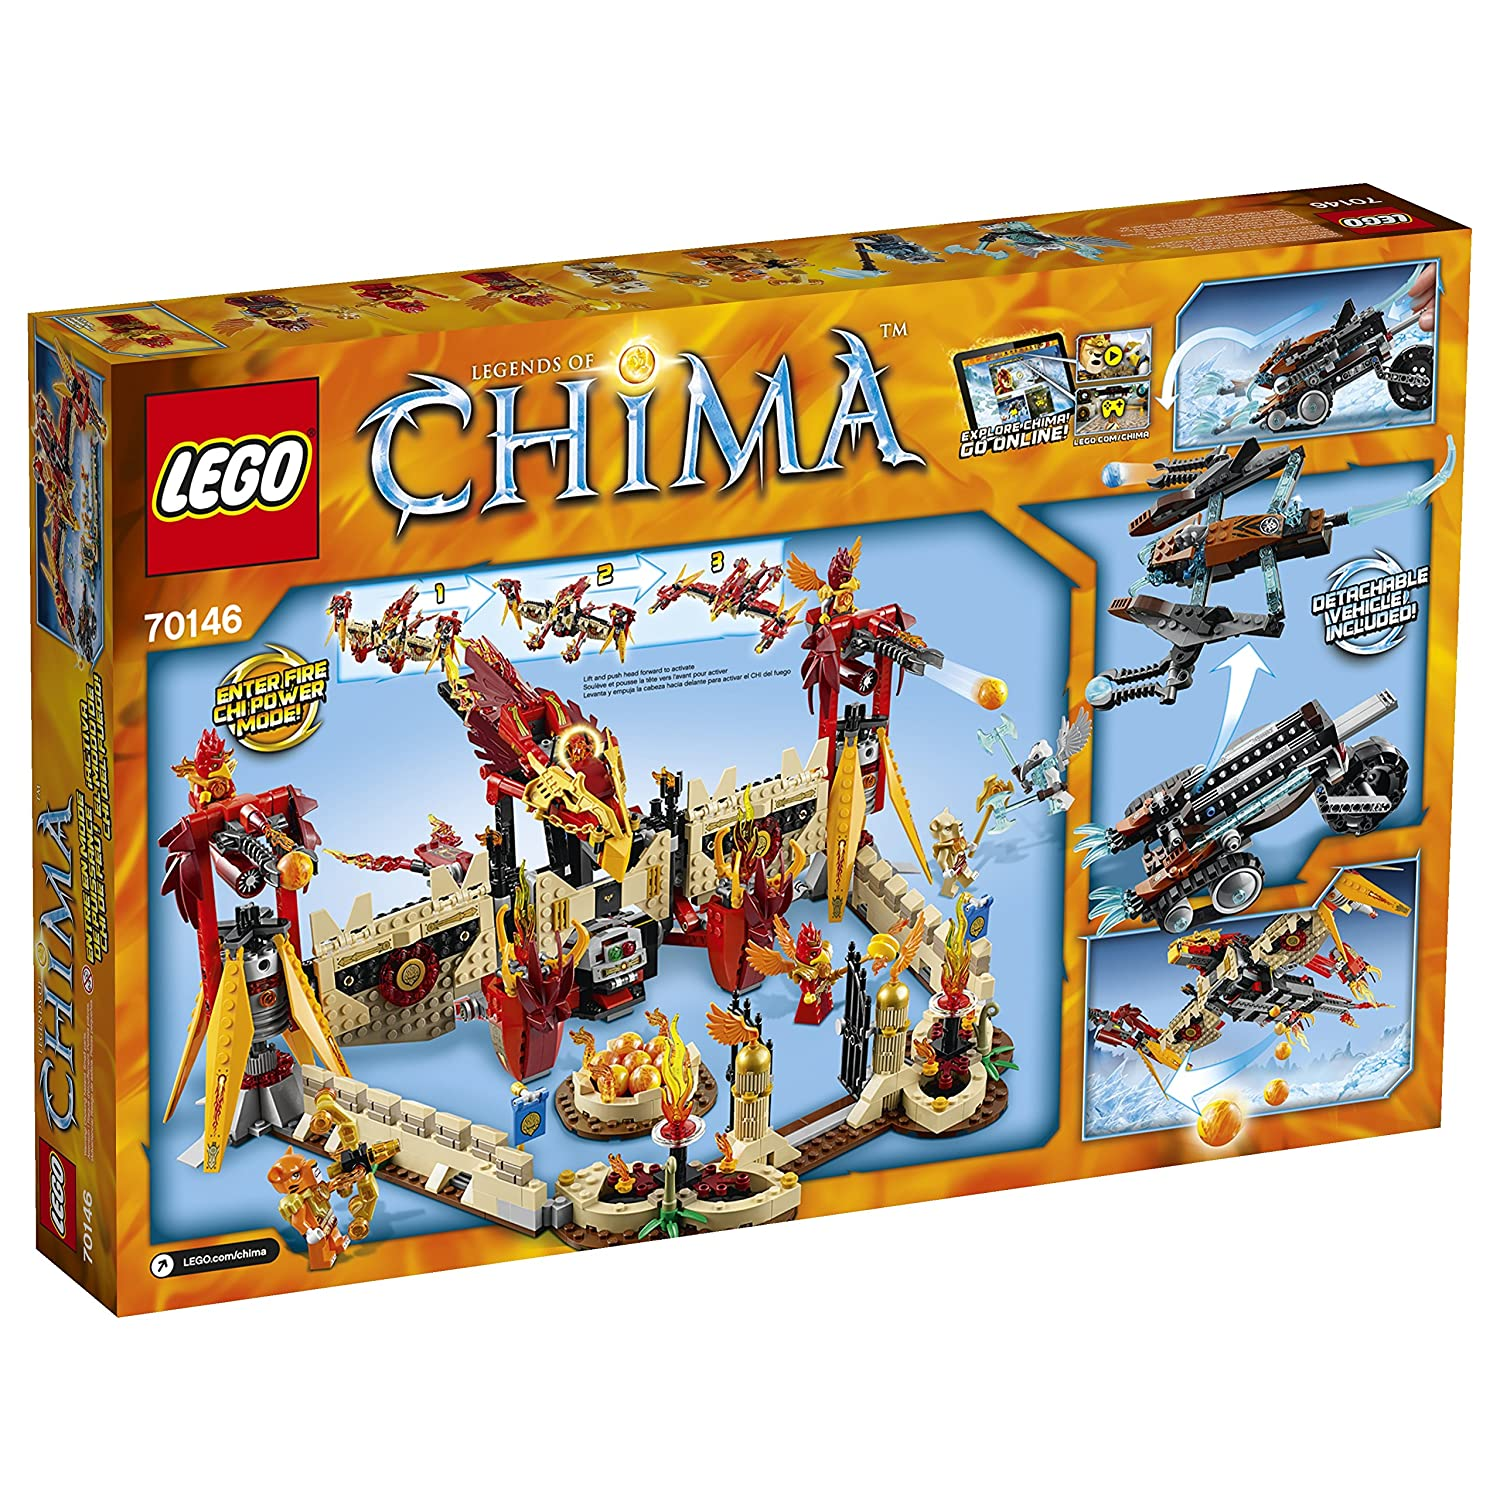 Amazon chima party supplies - Amazon Com Lego Chima 70146 Flying Phoenix Fire Temple Building Toy Discontinued By Manufacturer Toys Games